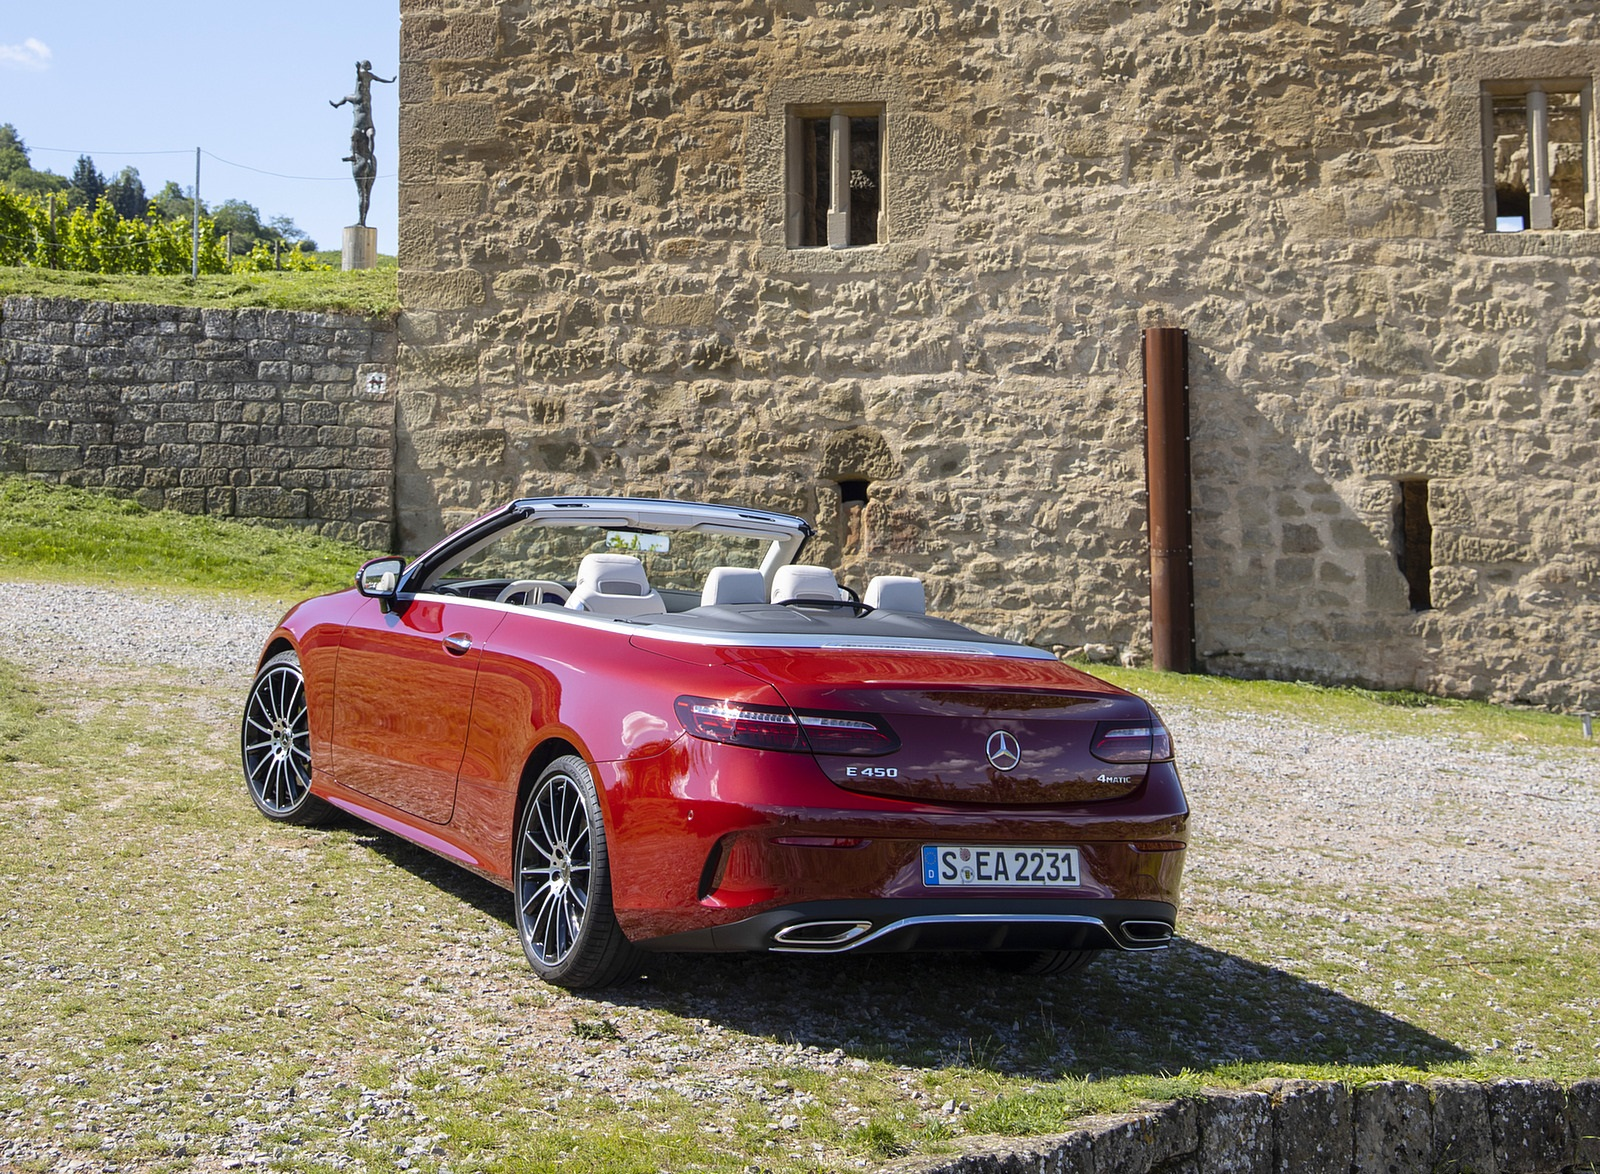 2021 Mercedes-Benz E 450 4MATIC Cabriolet (Color: Patagonia Red) Rear Three-Quarter Wallpapers (9)